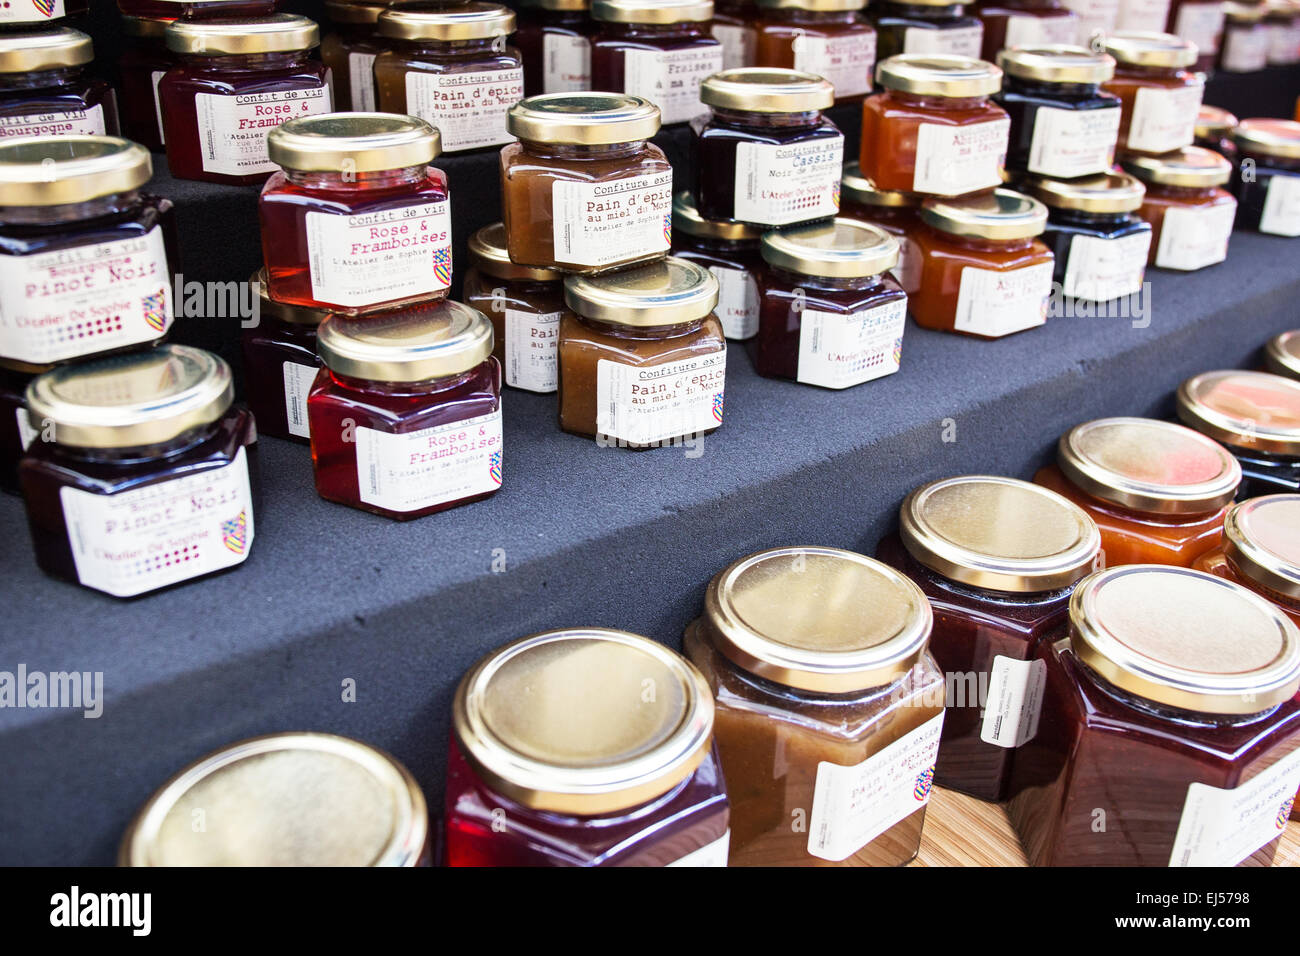 jars of jam and marmalade on sale at a farmers market in. Black Bedroom Furniture Sets. Home Design Ideas